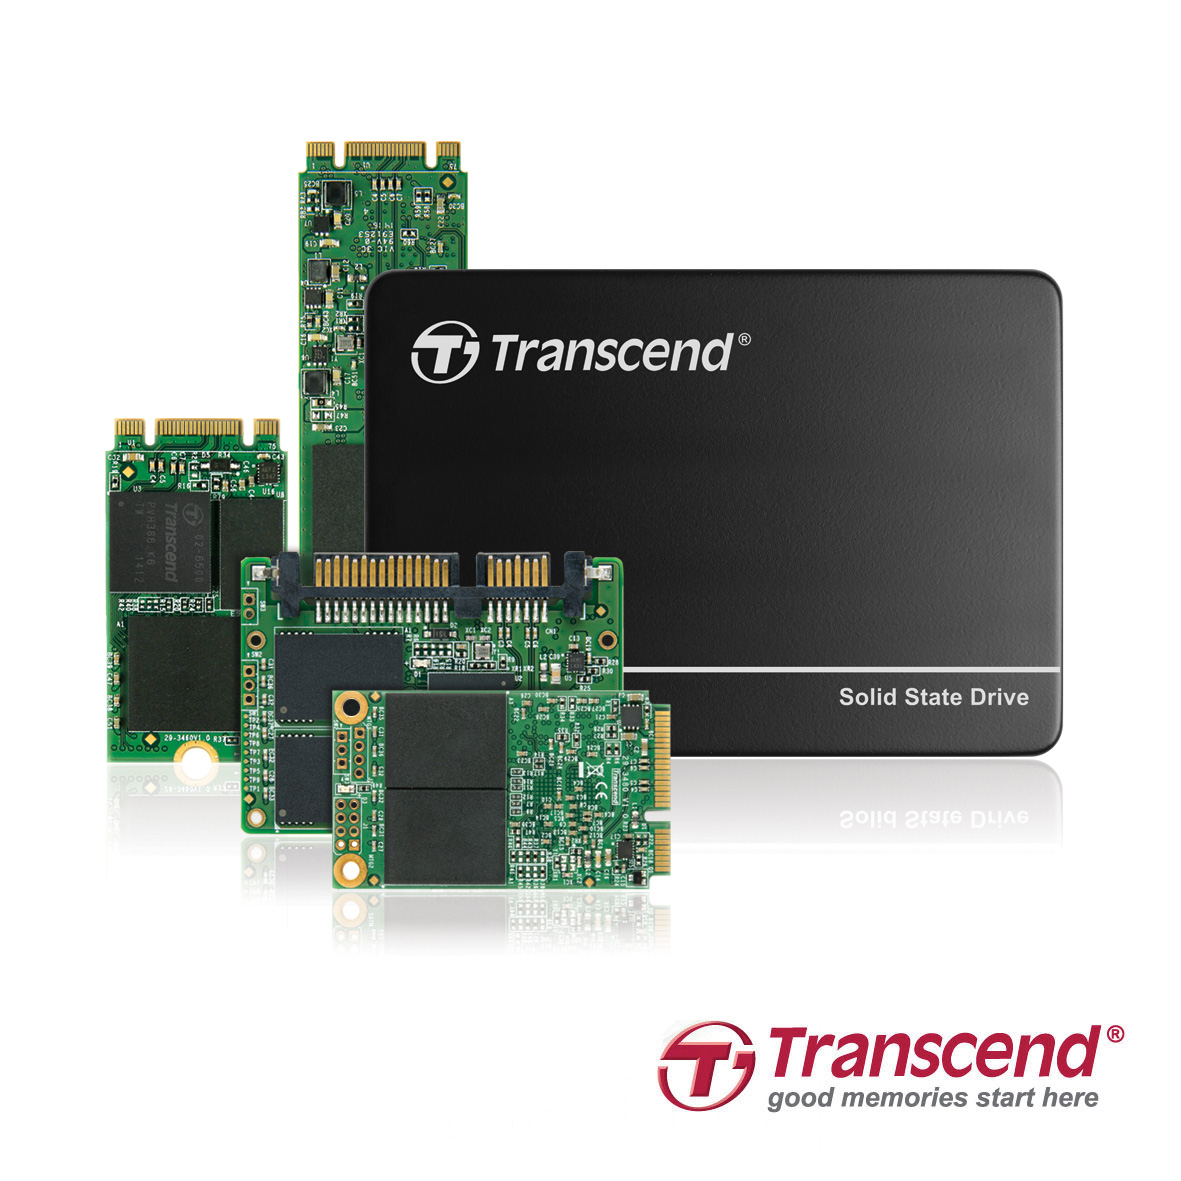 Transcend Develops SuperMLC Technology